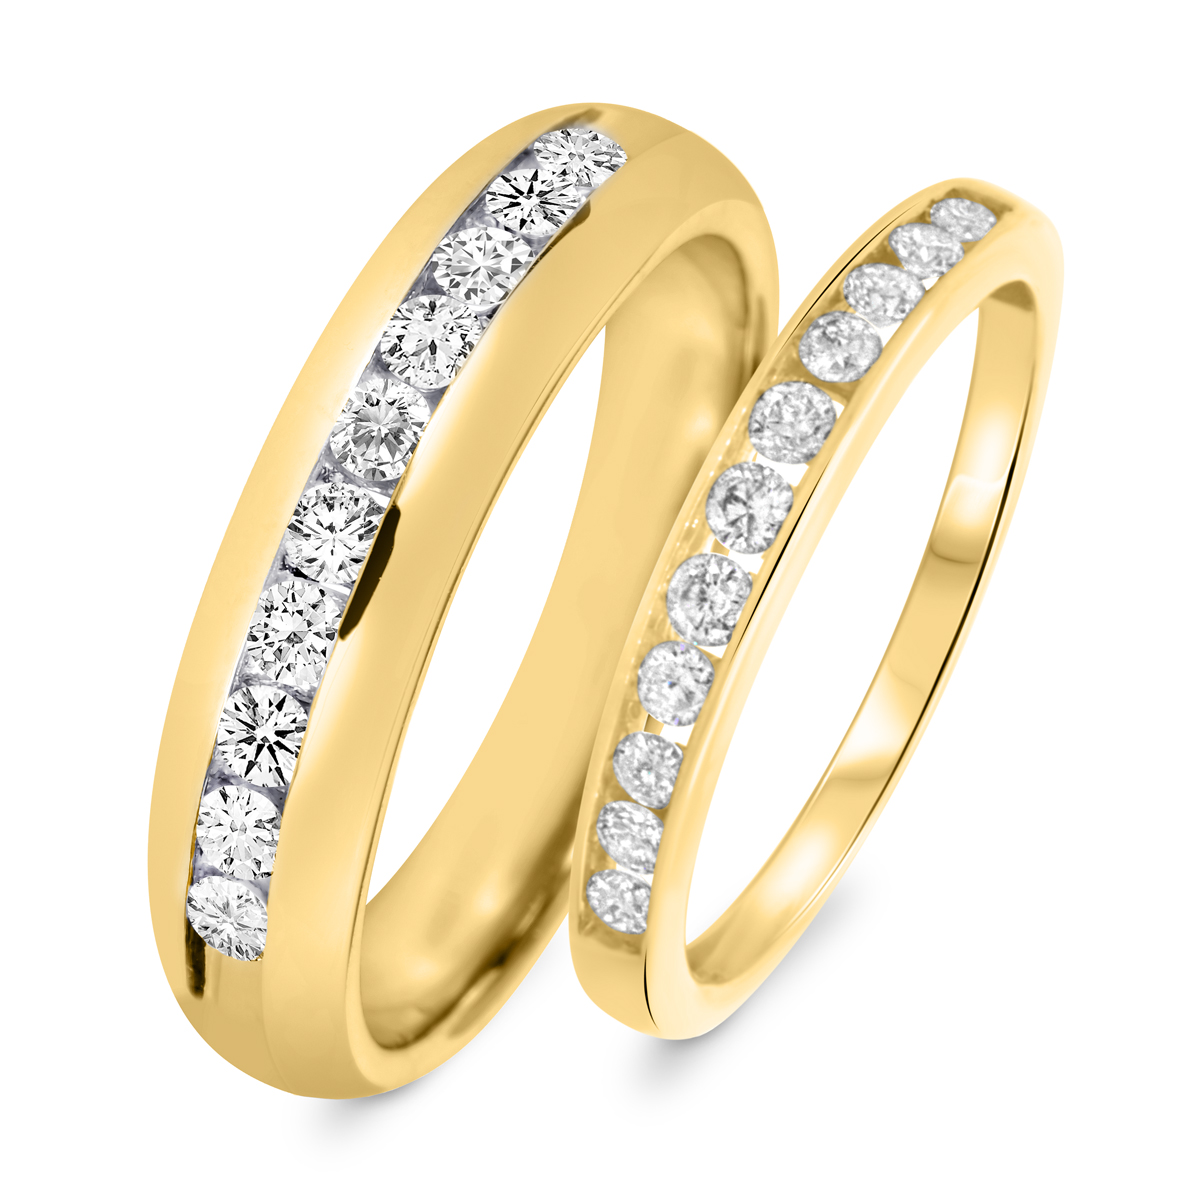 7/8 Carat T.W. Round Cut Diamond His And Hers Wedding Band Set 14K Yellow Gold-